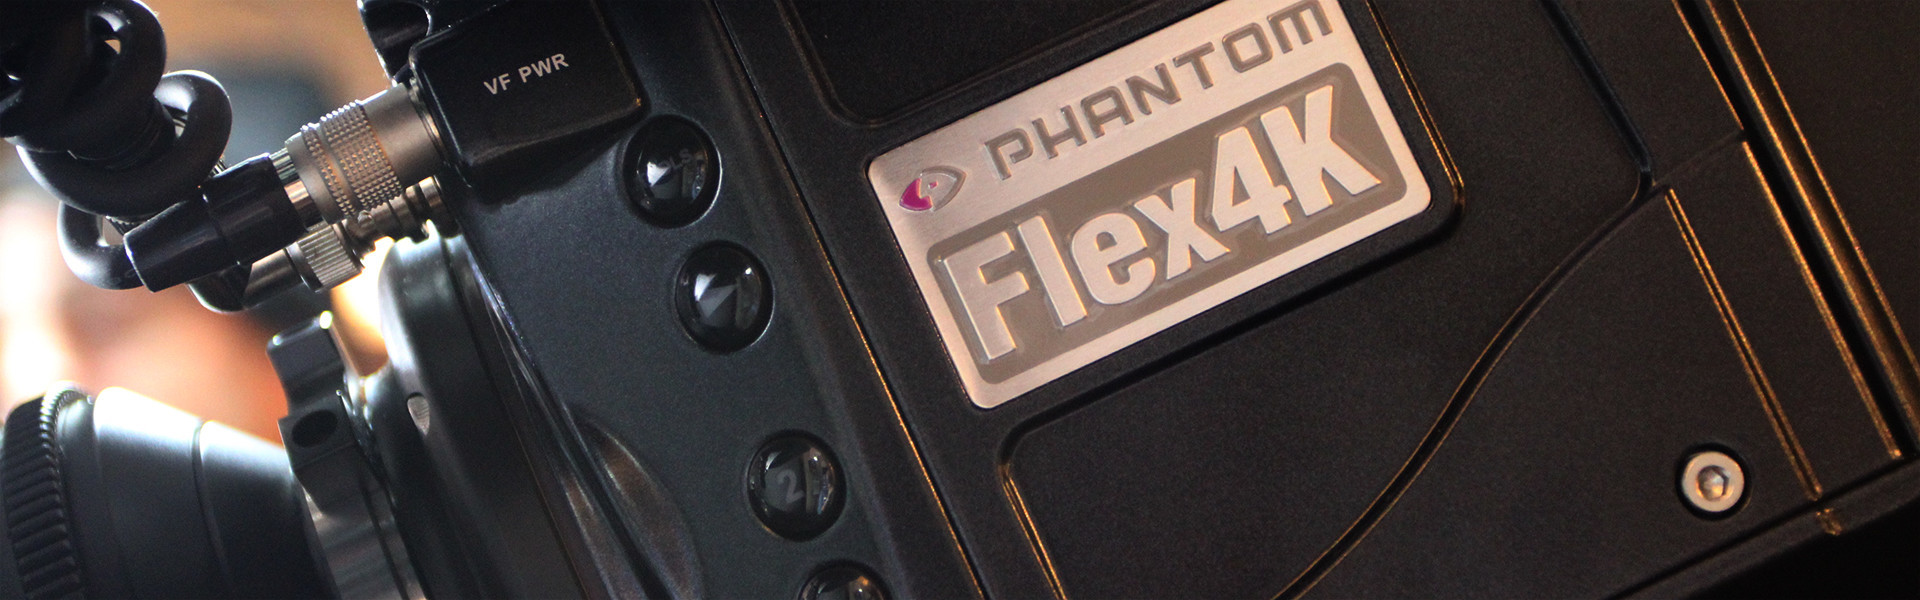 Header image for article Phantom Flex4K FAQs